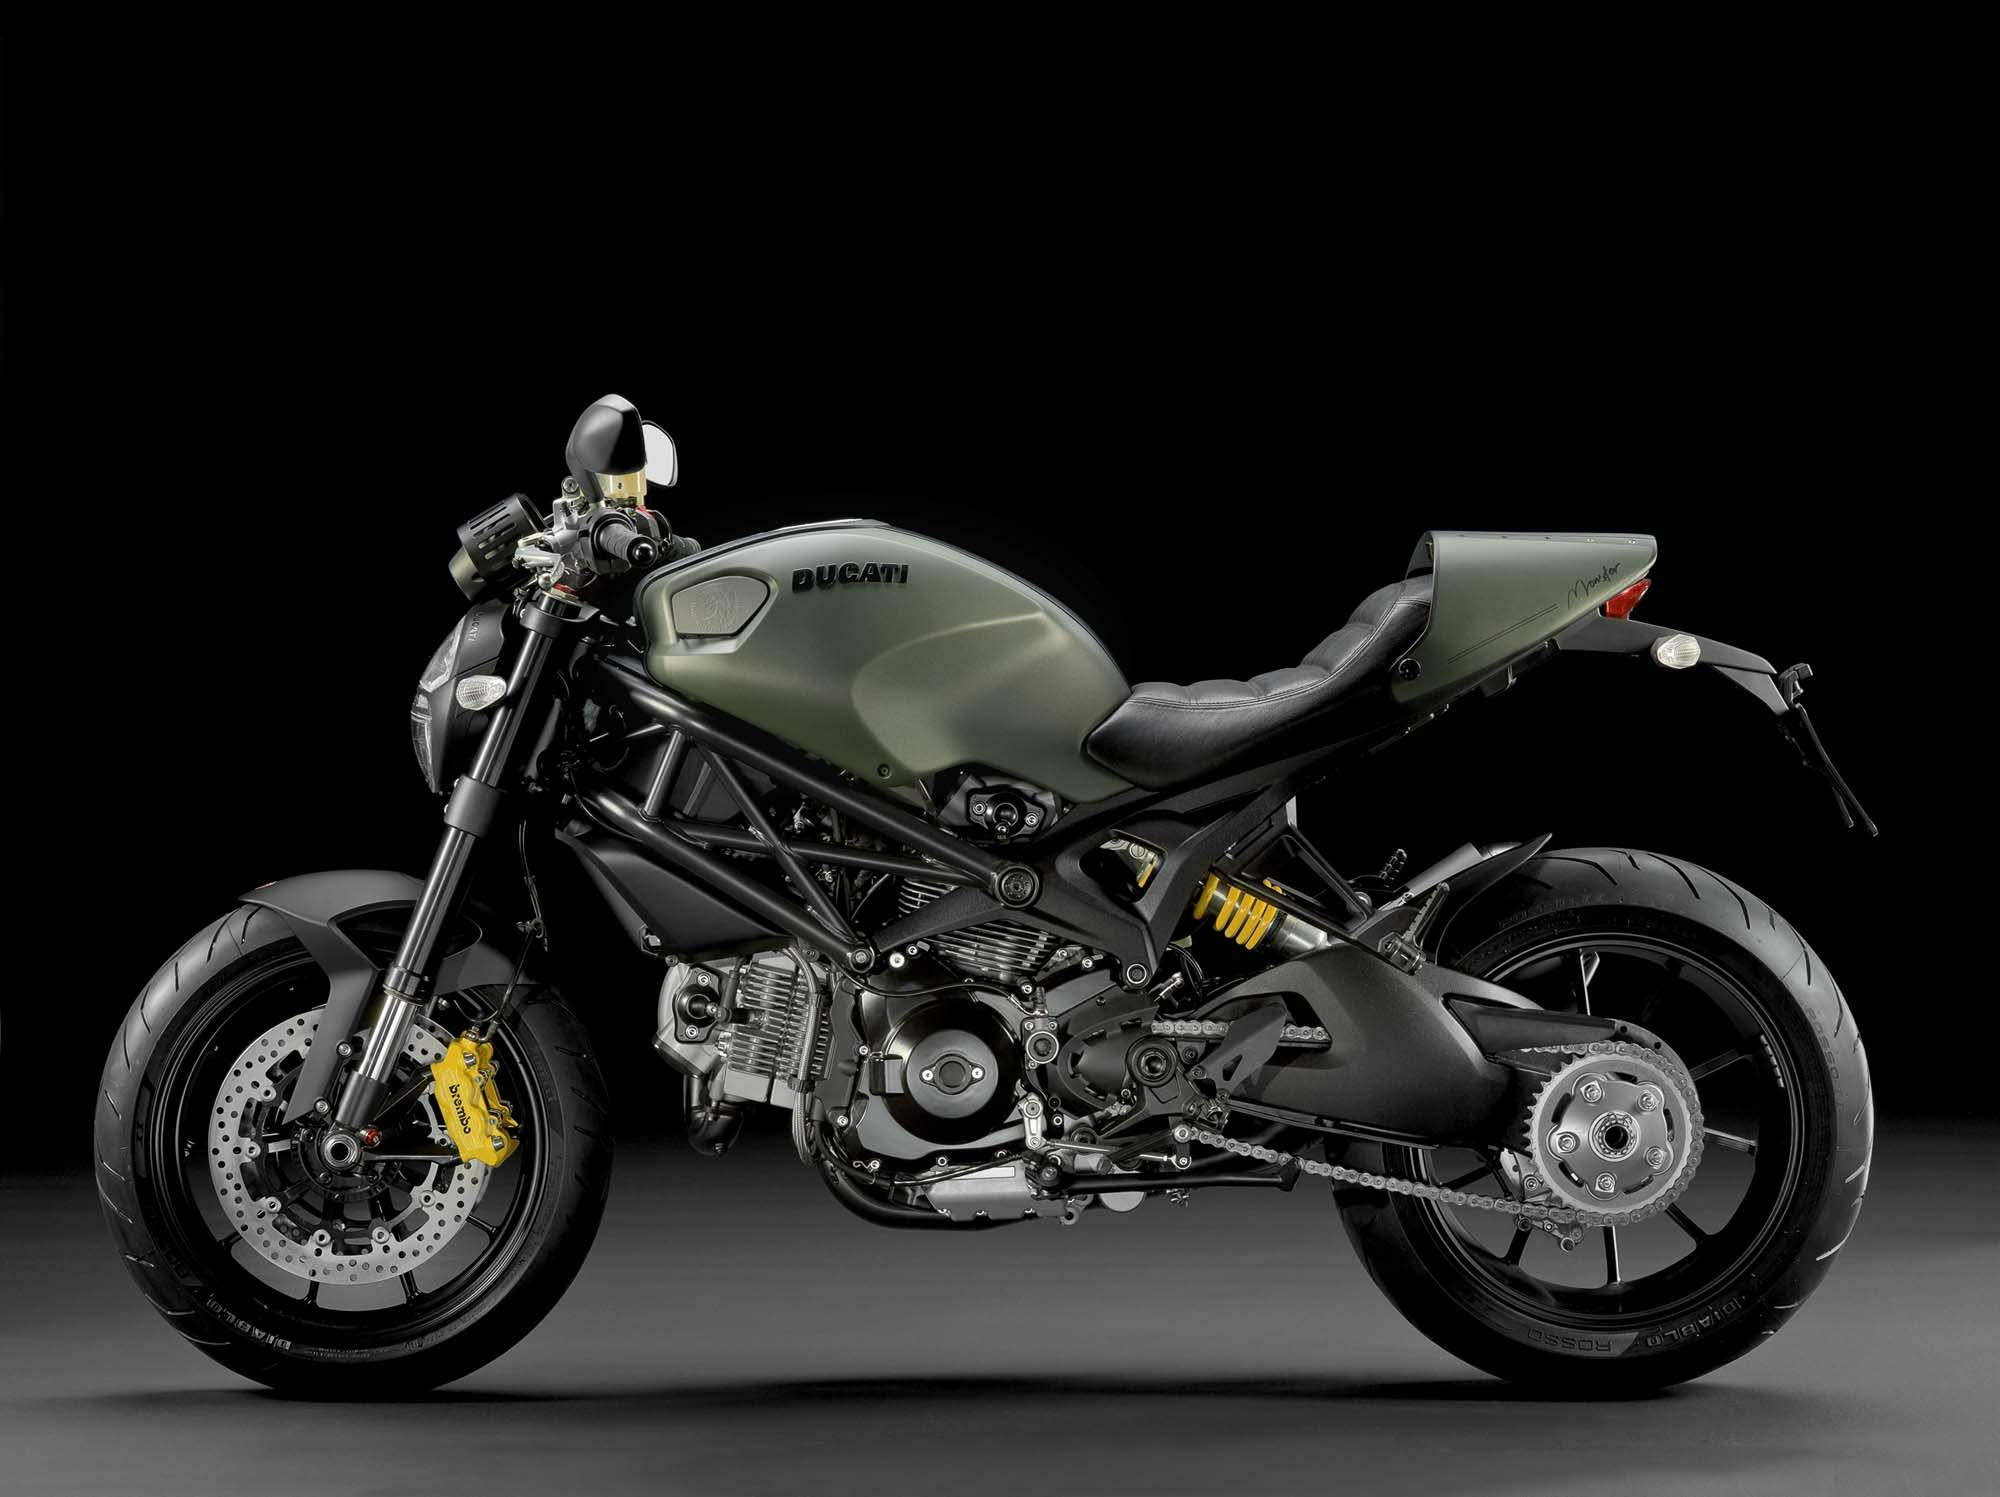 ducati monster 1100 evo diesel special edition specs. Black Bedroom Furniture Sets. Home Design Ideas